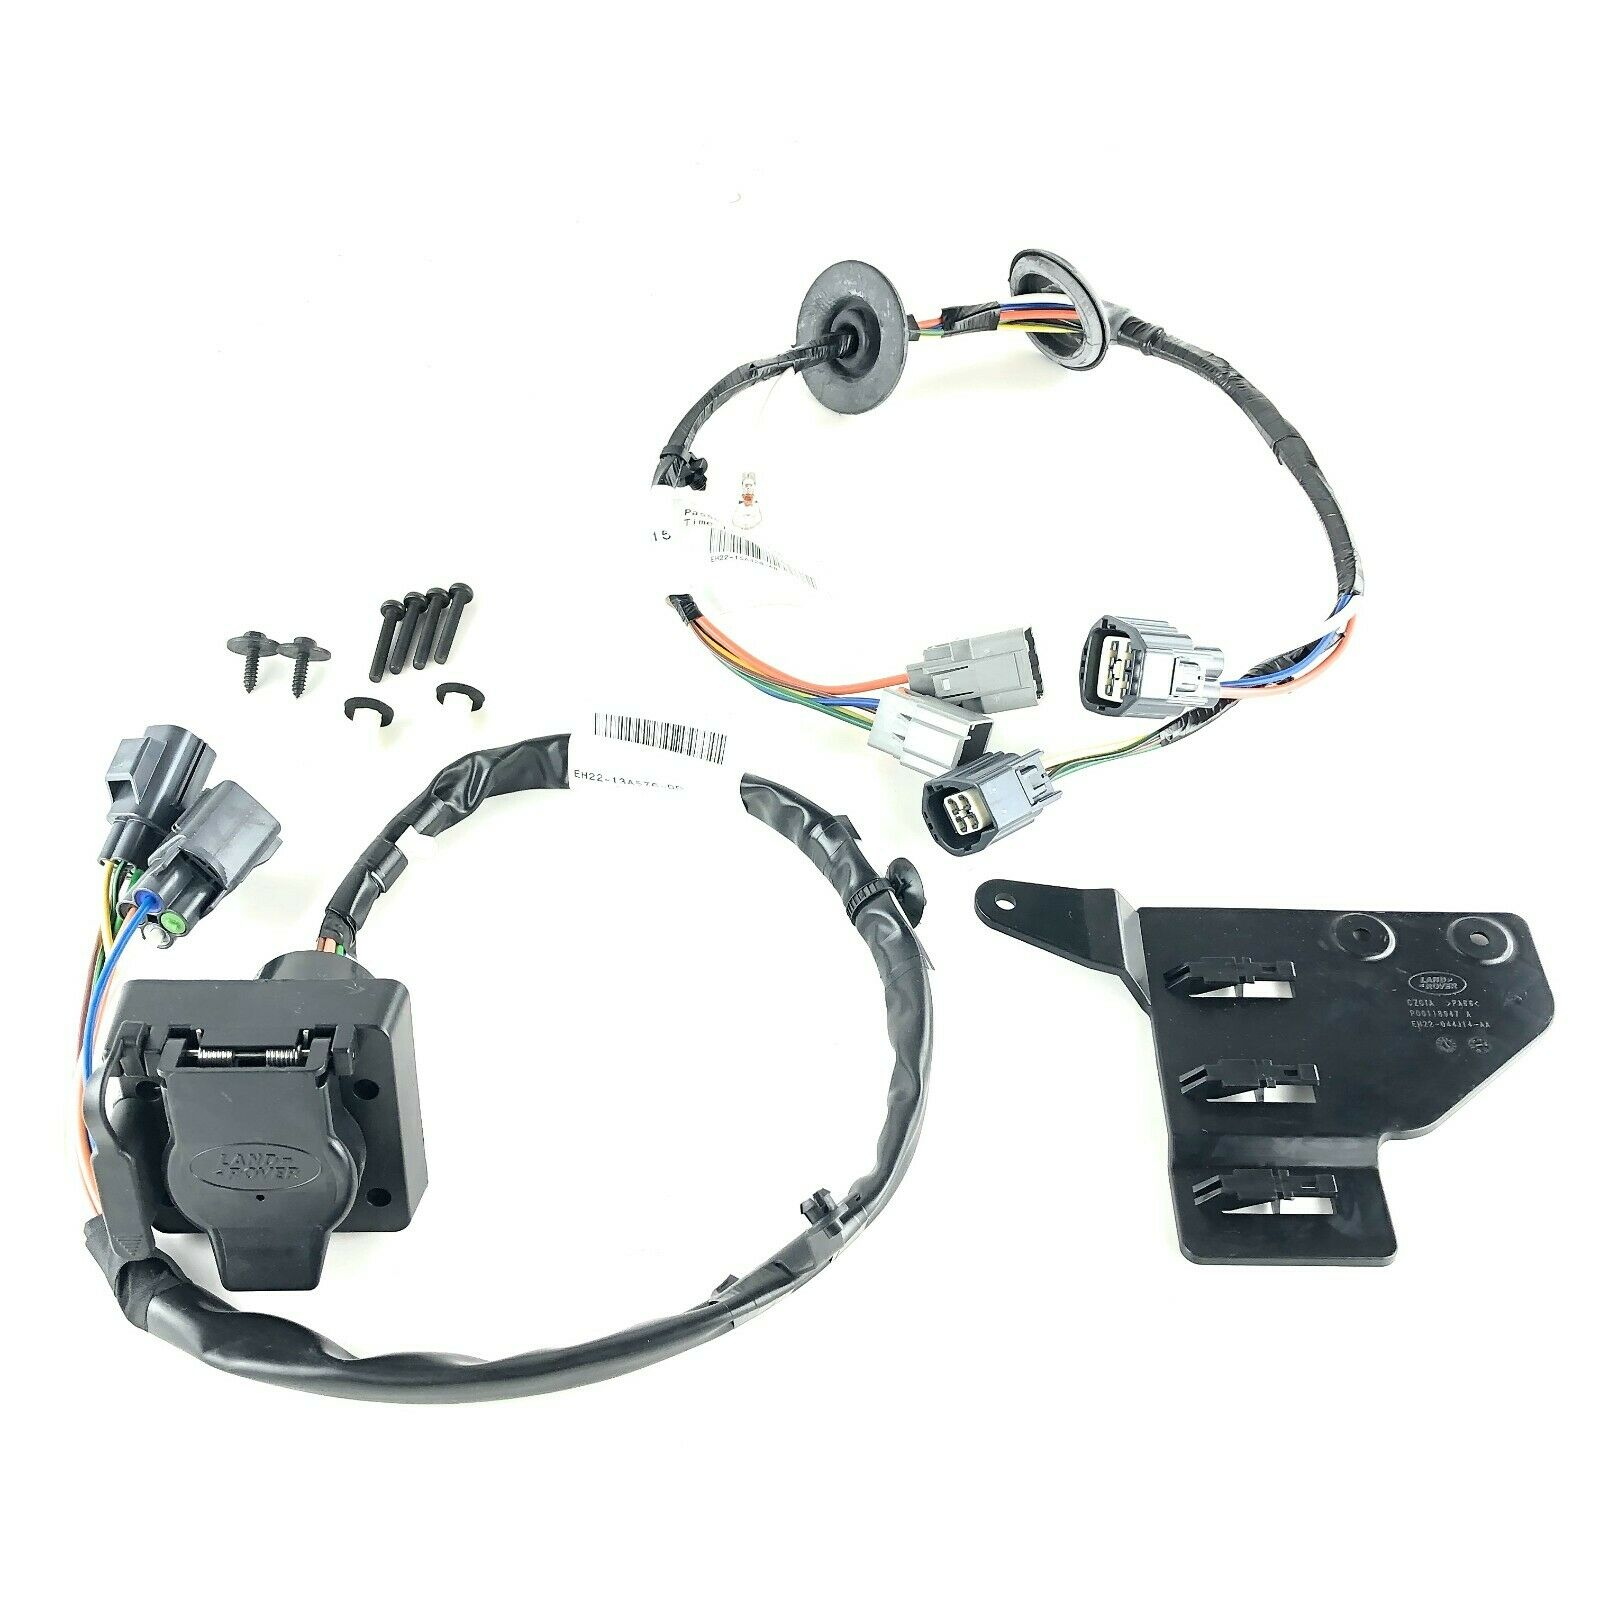 14-16 Land Rover LR4 Towing Tow Trailer Electrics Wiring Harness Kit  Genuine New 1 of 4Only 5 available See More